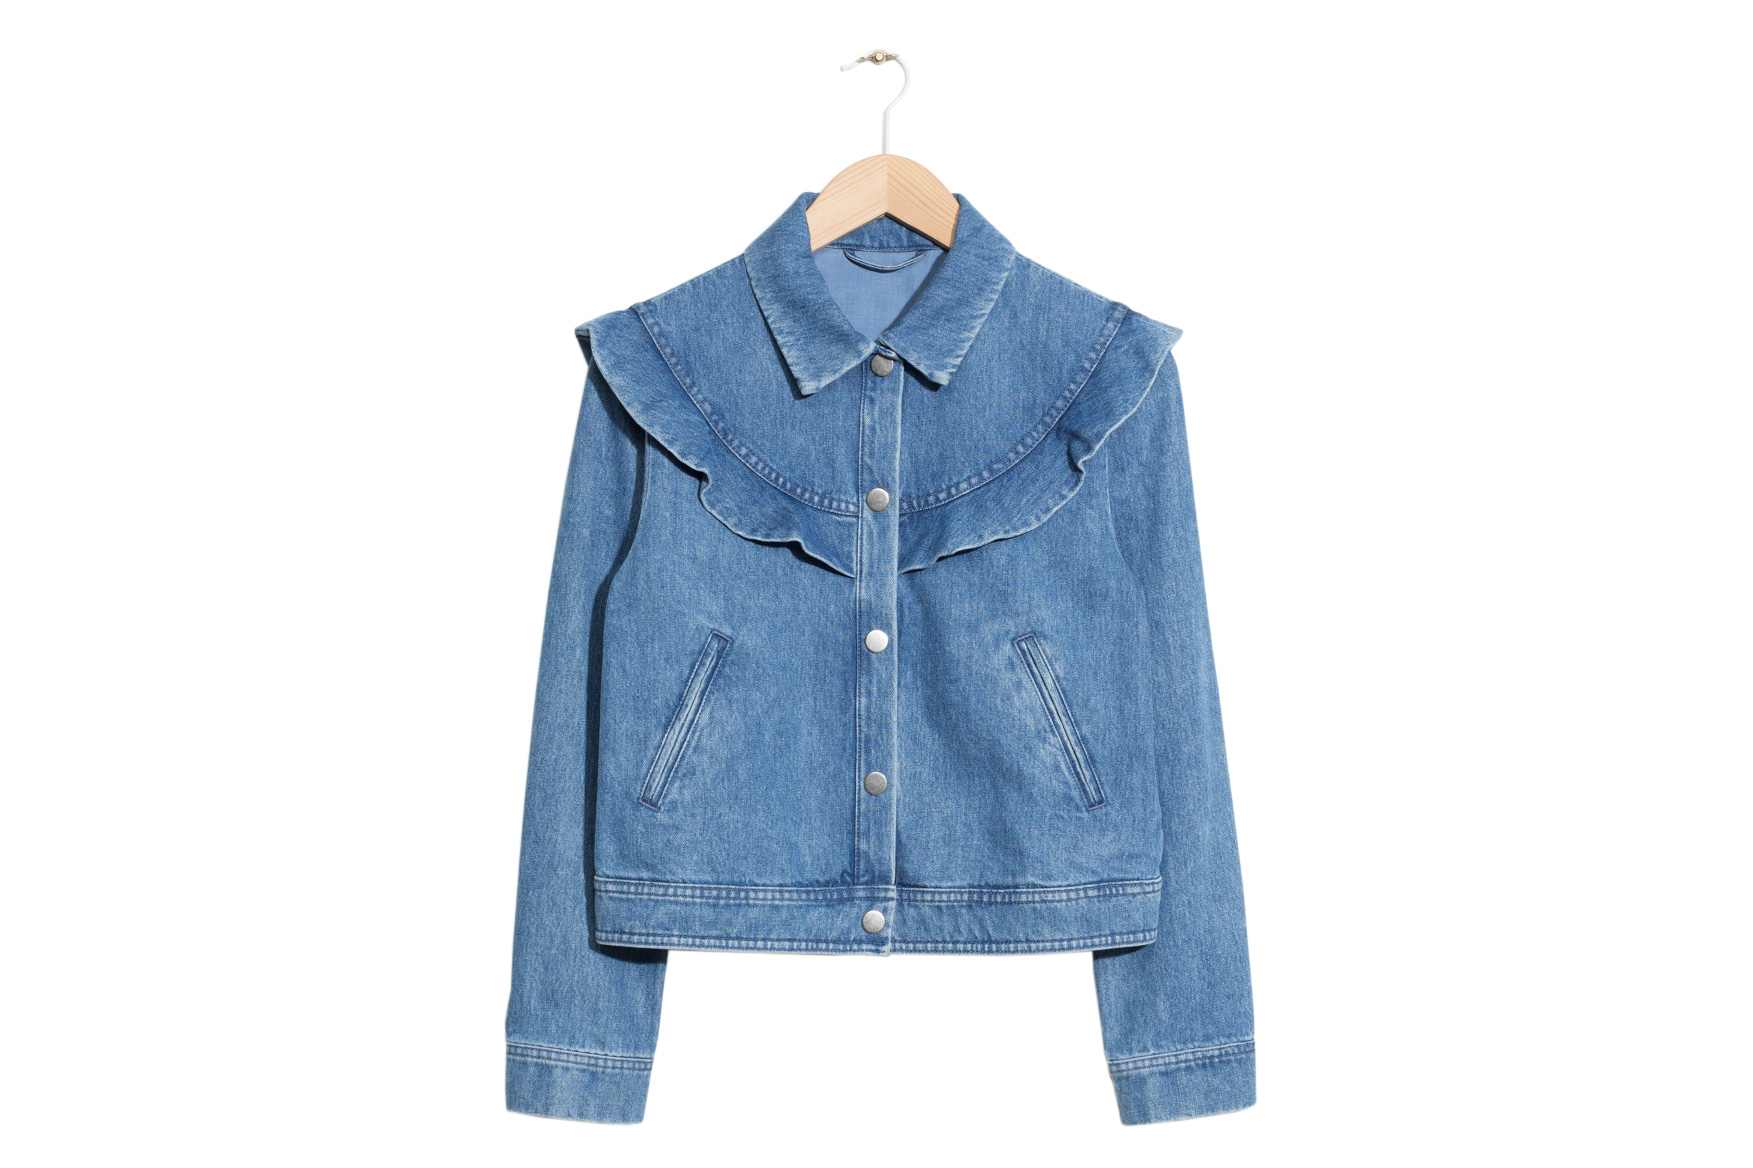 & Other Stories Frilled Embroidery Denim Jacket